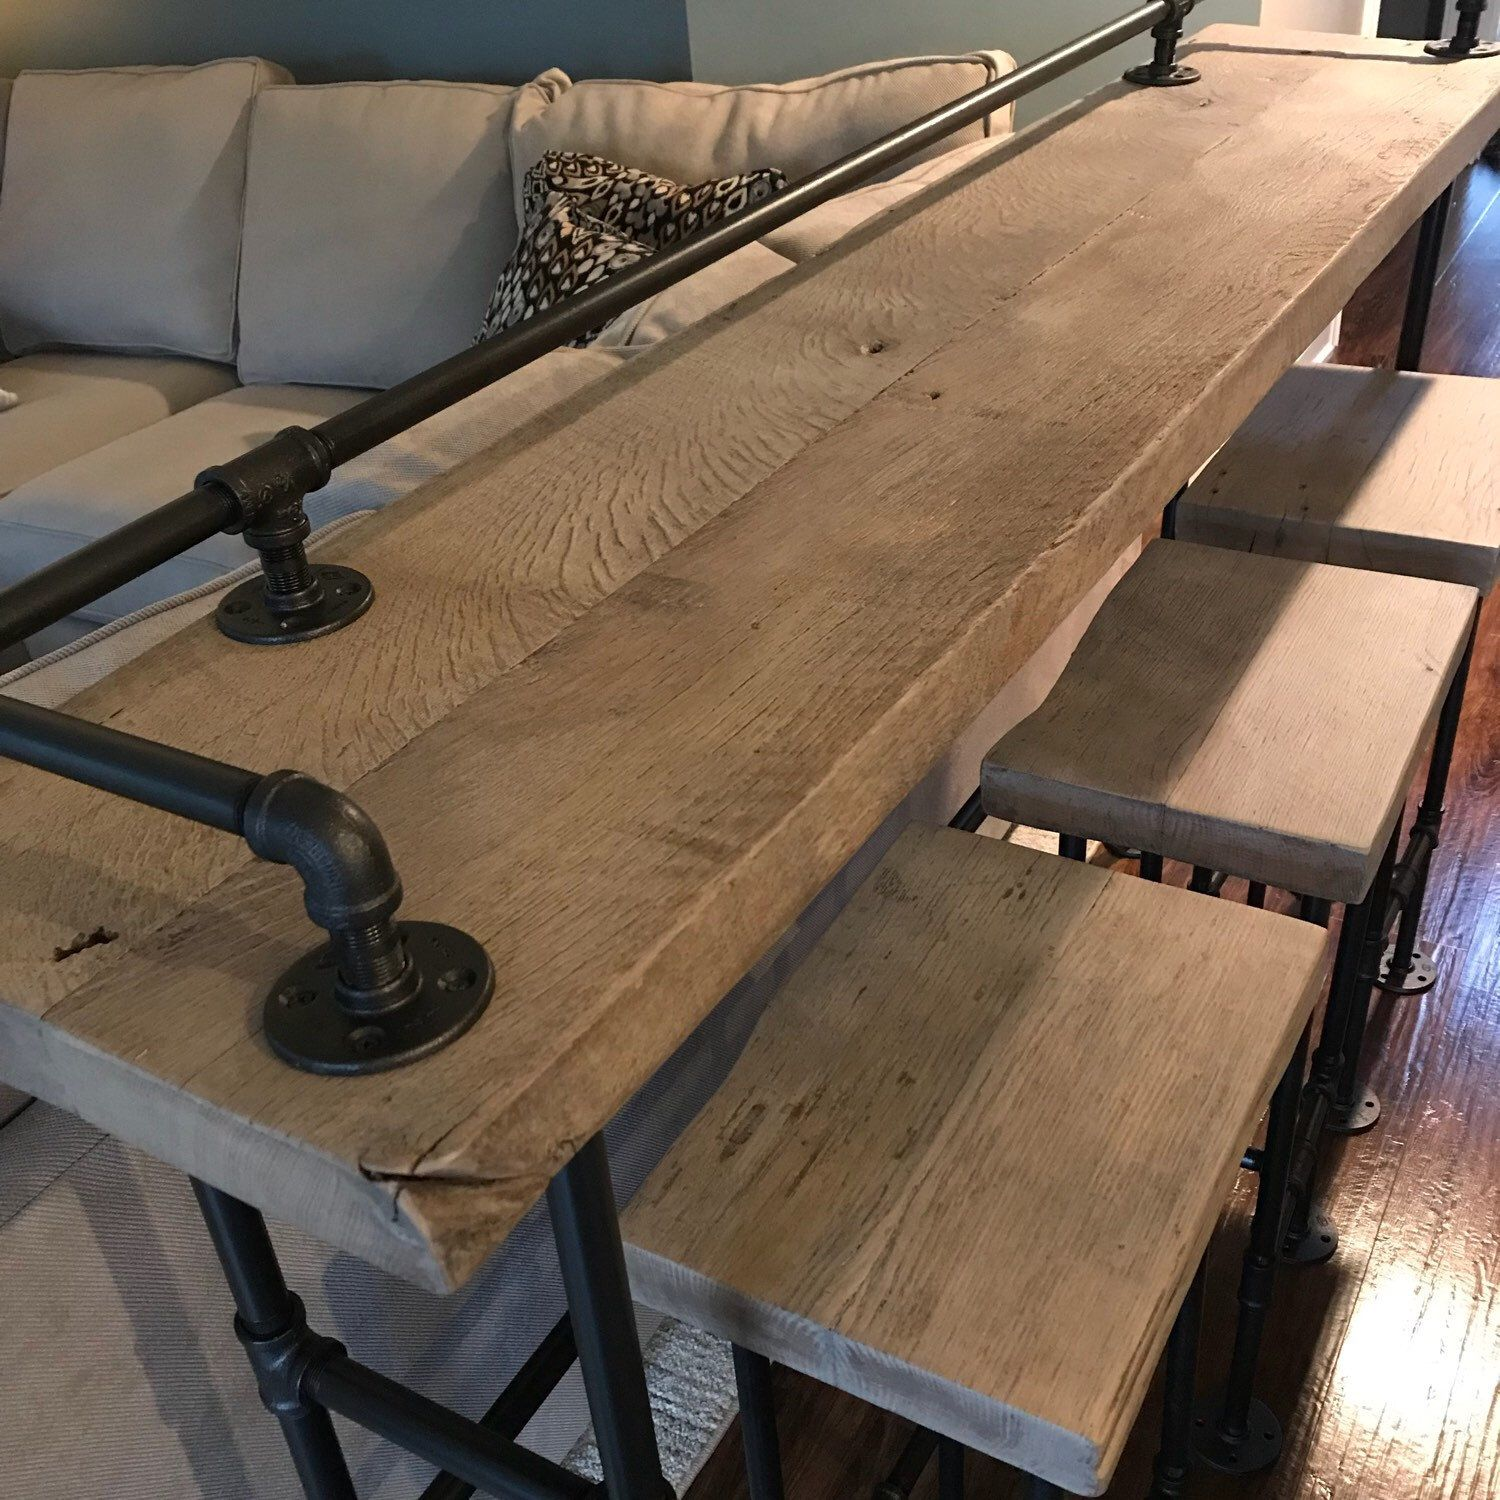 Sofa bar finished in a rustic gray with a matte finish and matching stools wood